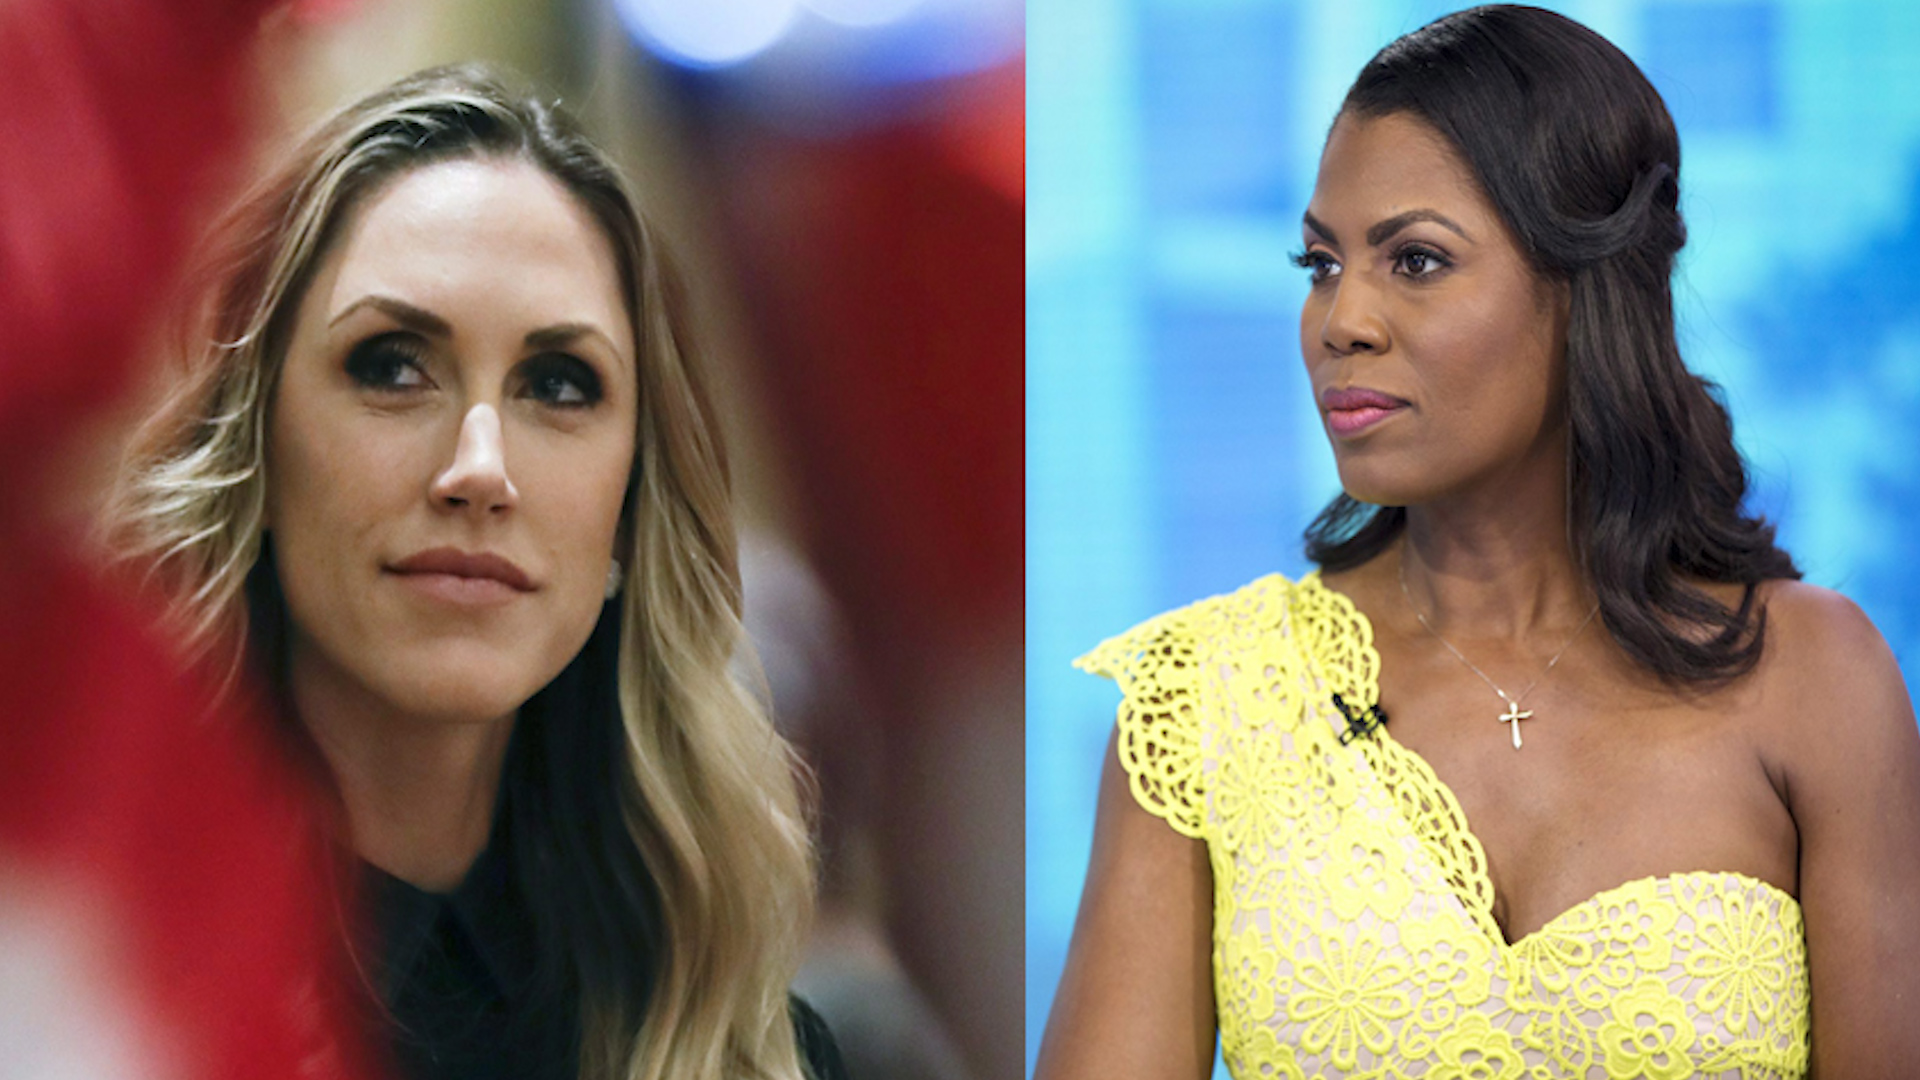 Lara Trump: who is the 'good Trump' that offered Omarosa 'hush money'?